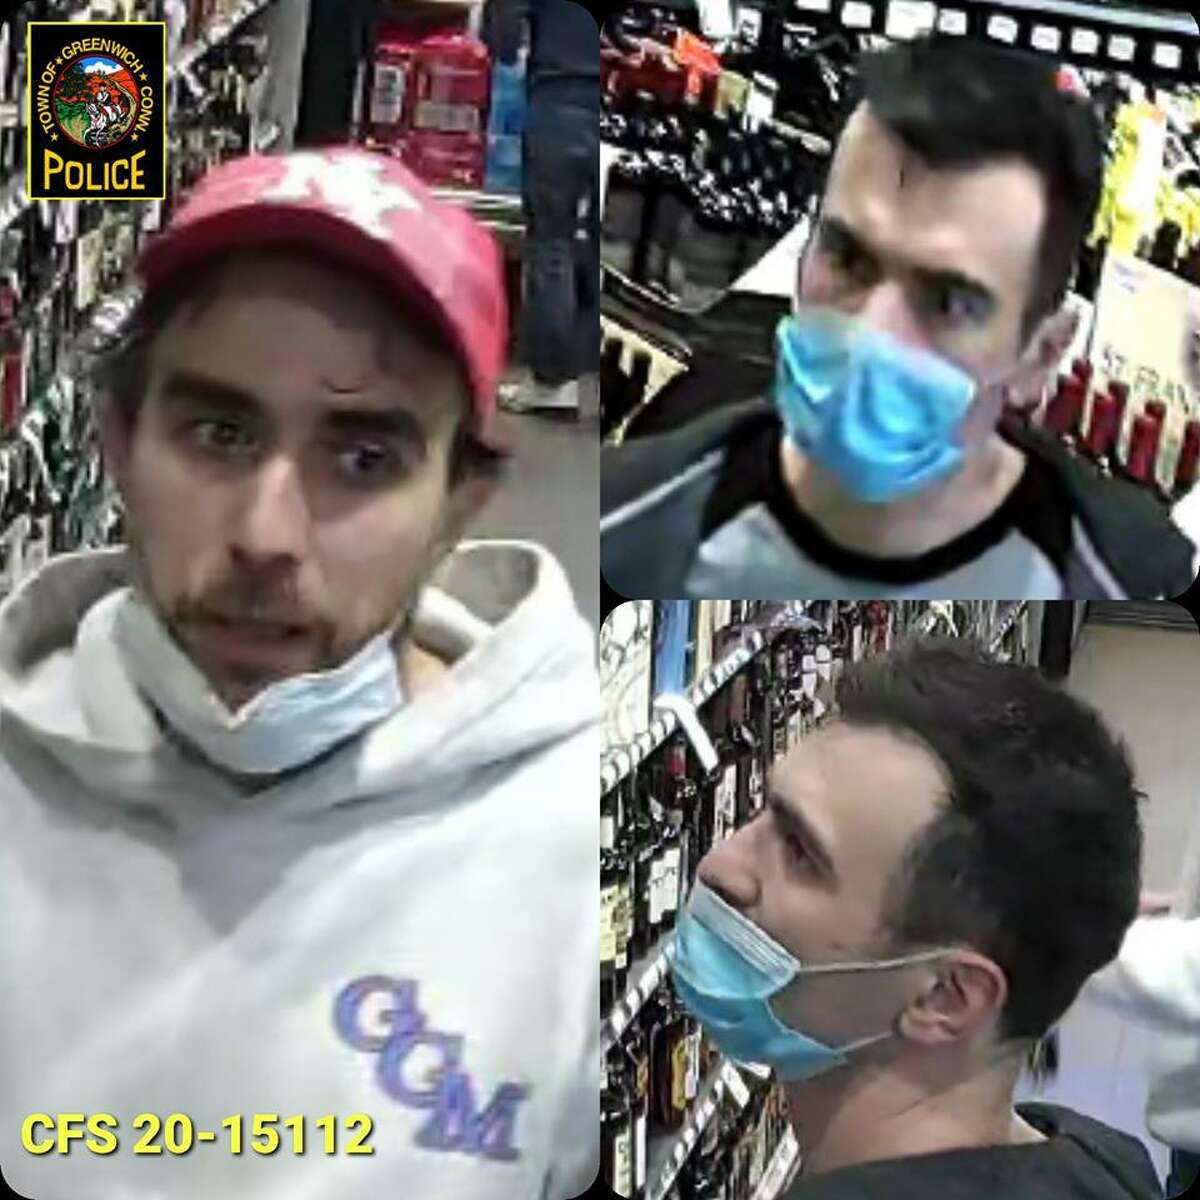 The Greenwich Police Department released these surveillance camera photos of two suspects in the theft of $700 worth of liquor from a store in Riverside.